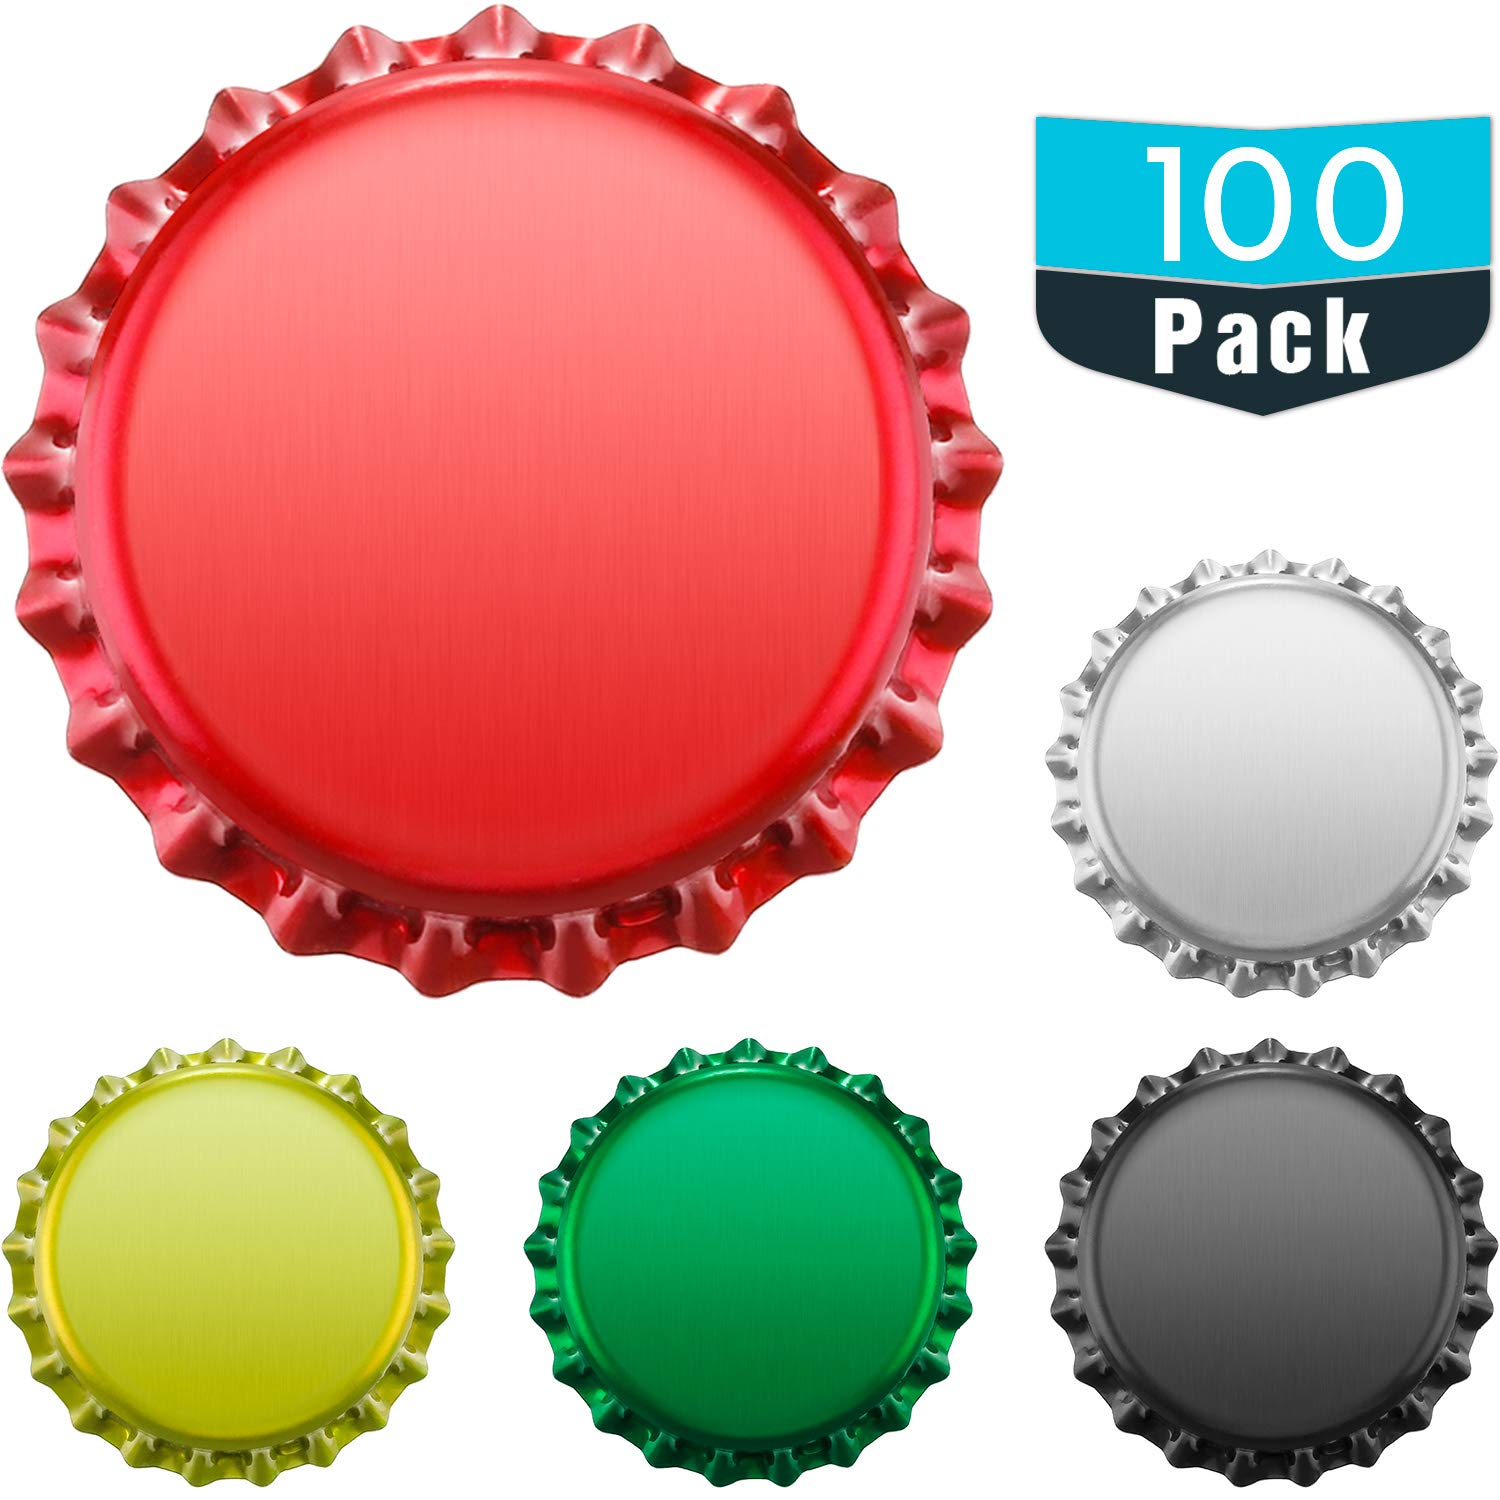 TecUnite 100 Pieces Beer Bottle Caps Oxygen Absorbing for HomeBrew, Crown Caps for Pry Off Bottles, Beer Map Caps, Craft Bottle Caps and Craft Supplies, 5 Colors